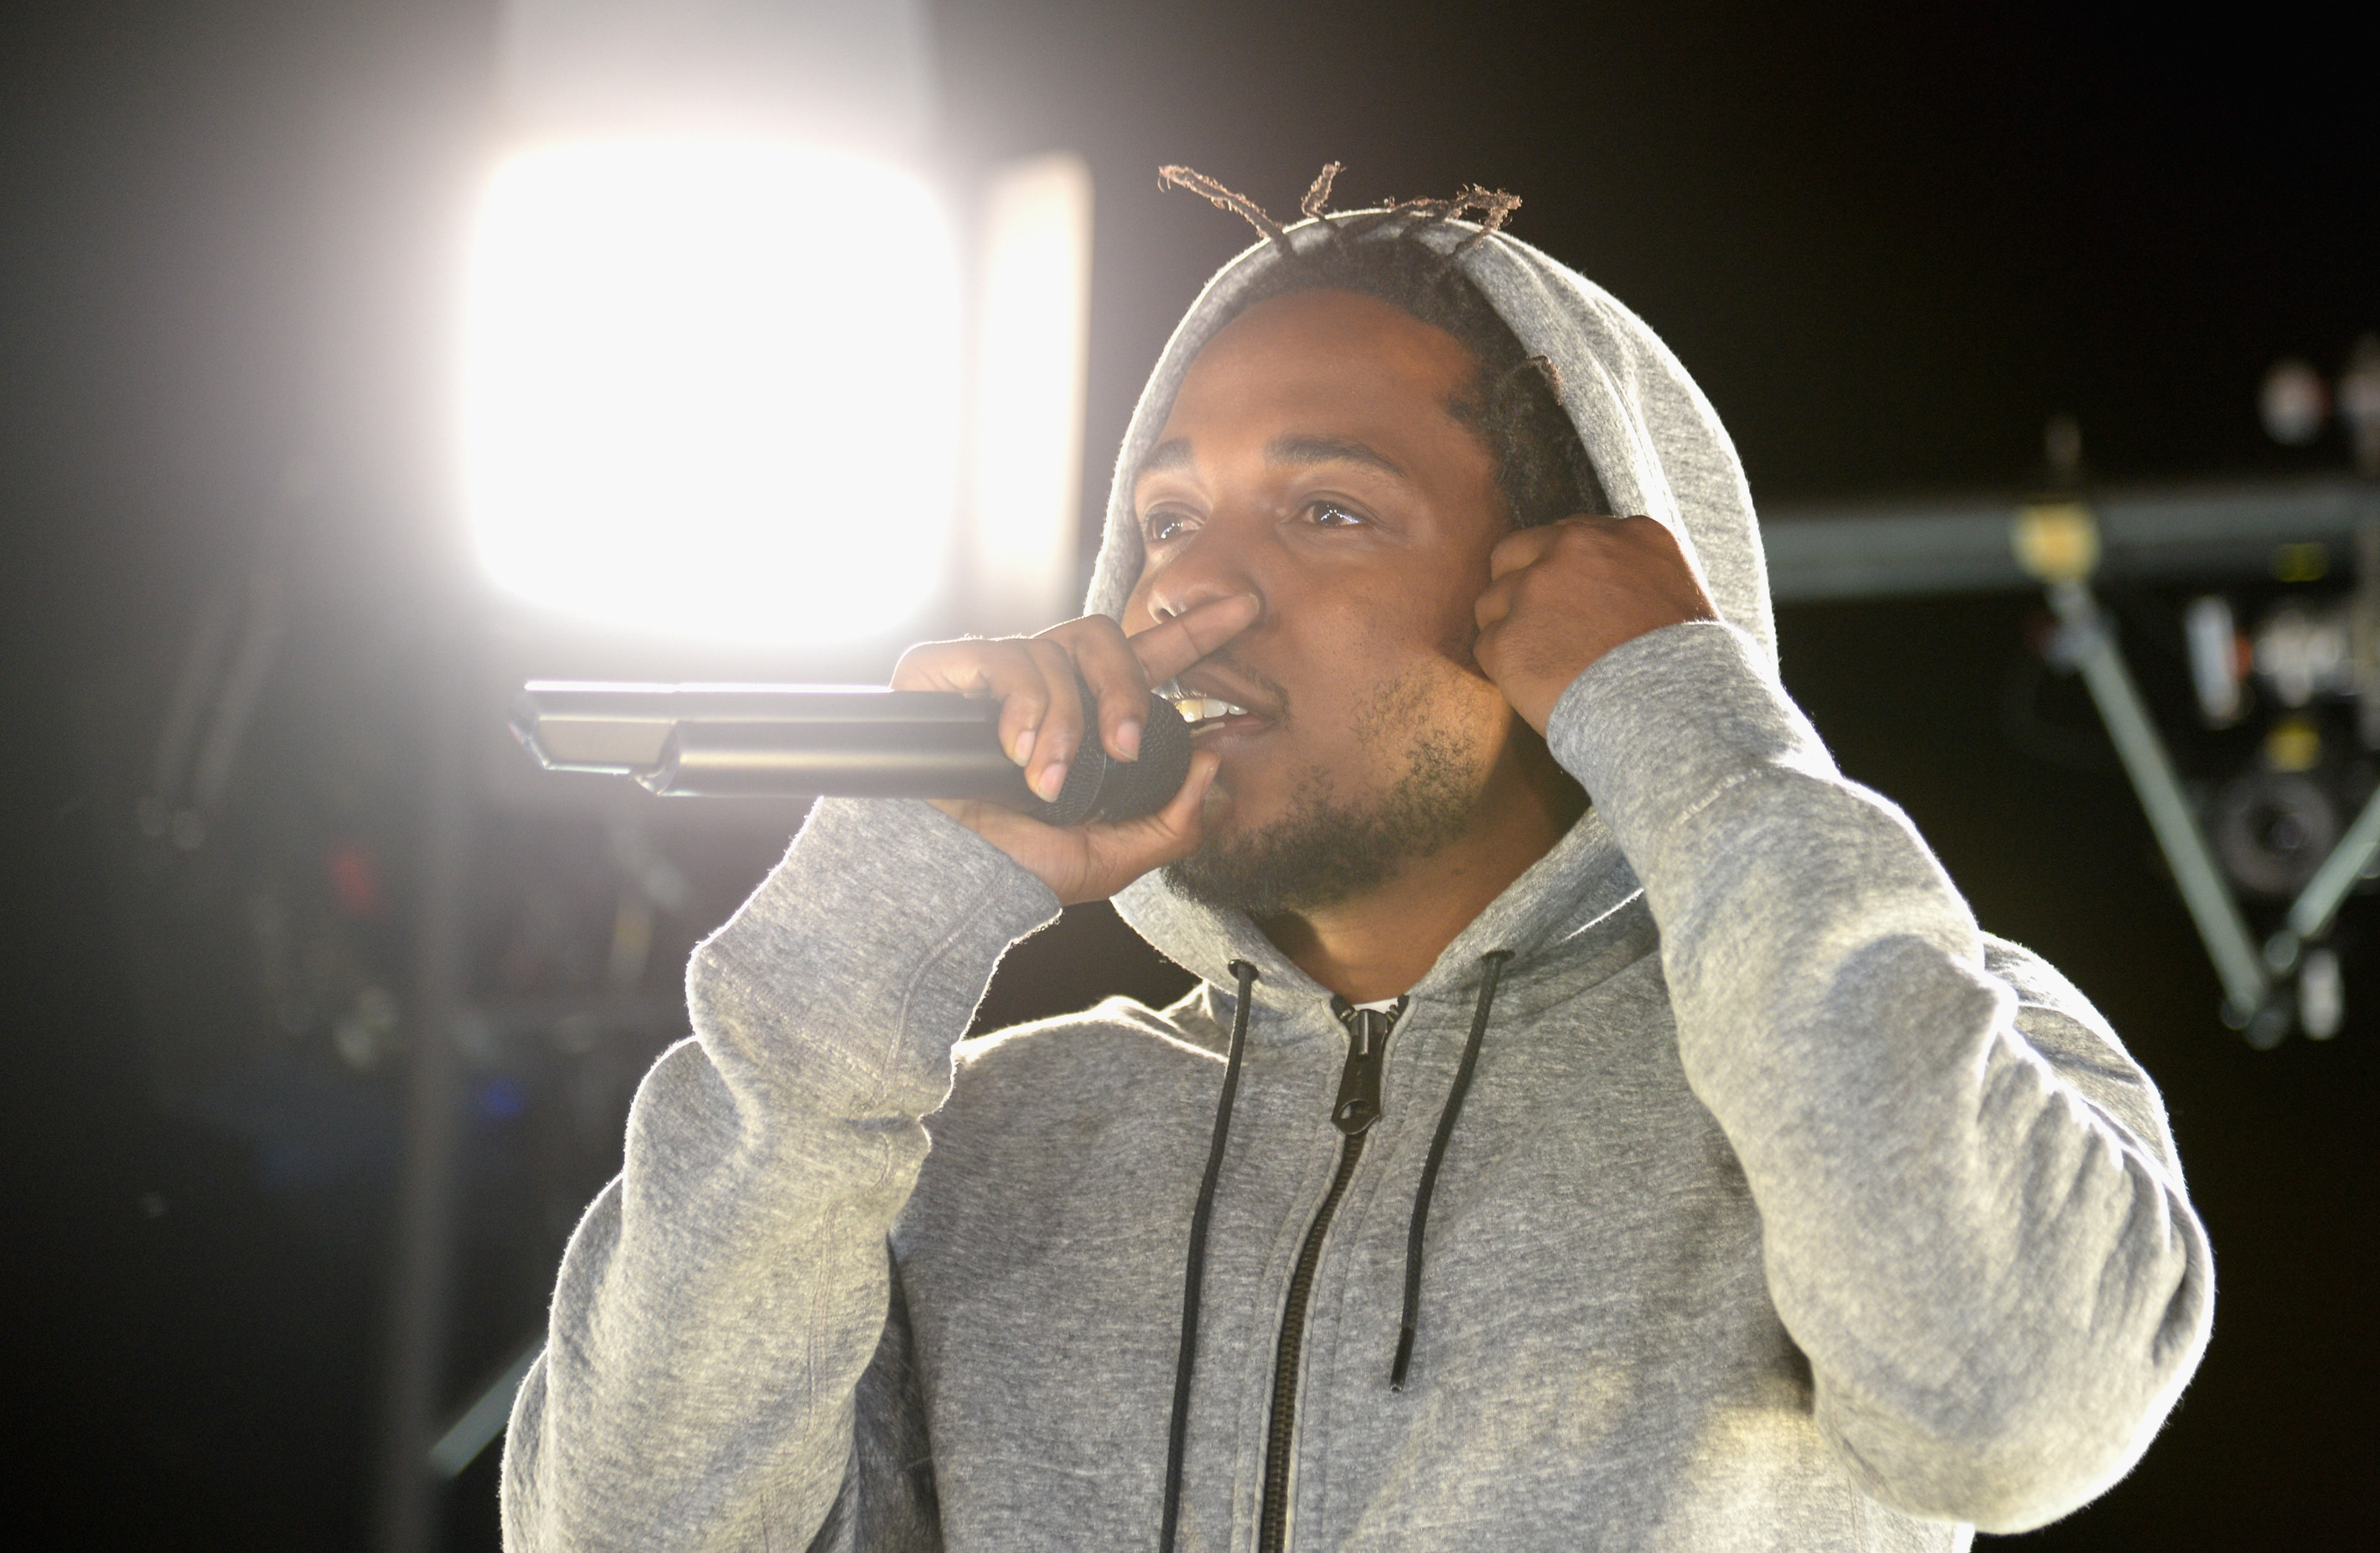 Kendrick Lamar performs at #GETPUMPED live event. Reebok And Kendrick Lamar Take Over The Streets Of Hollywood, Fusing Fitness And Music With A Ground-Breaking Event on March 24, 2015 in West Hollywood, California.